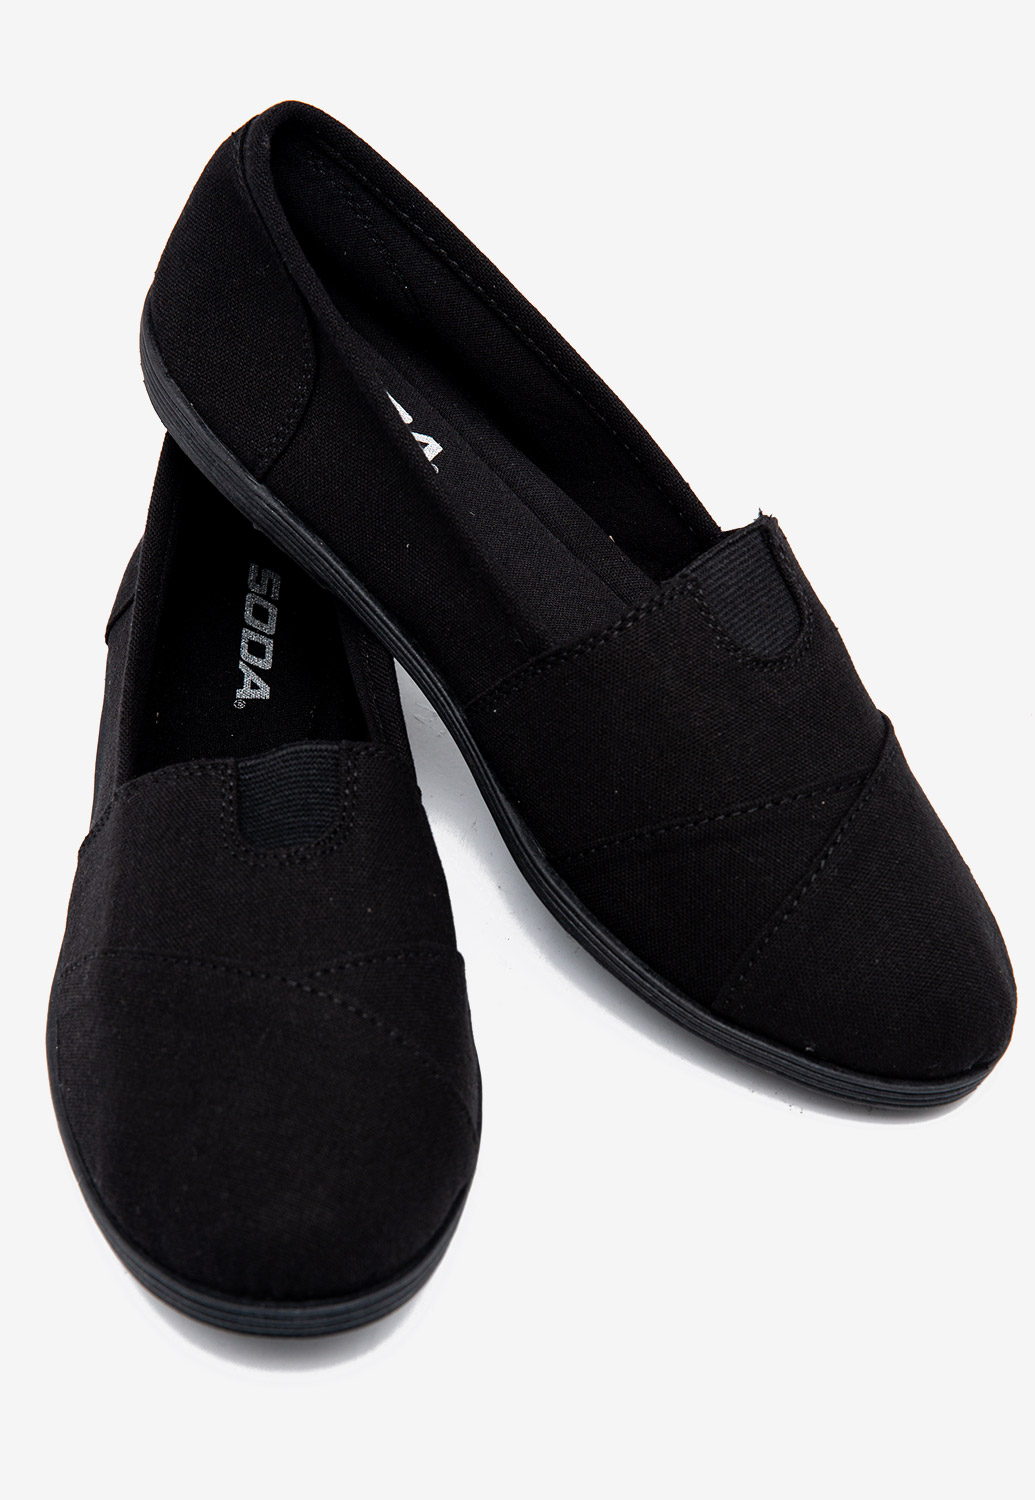 Round Toe Flexible Slip On Sneakers